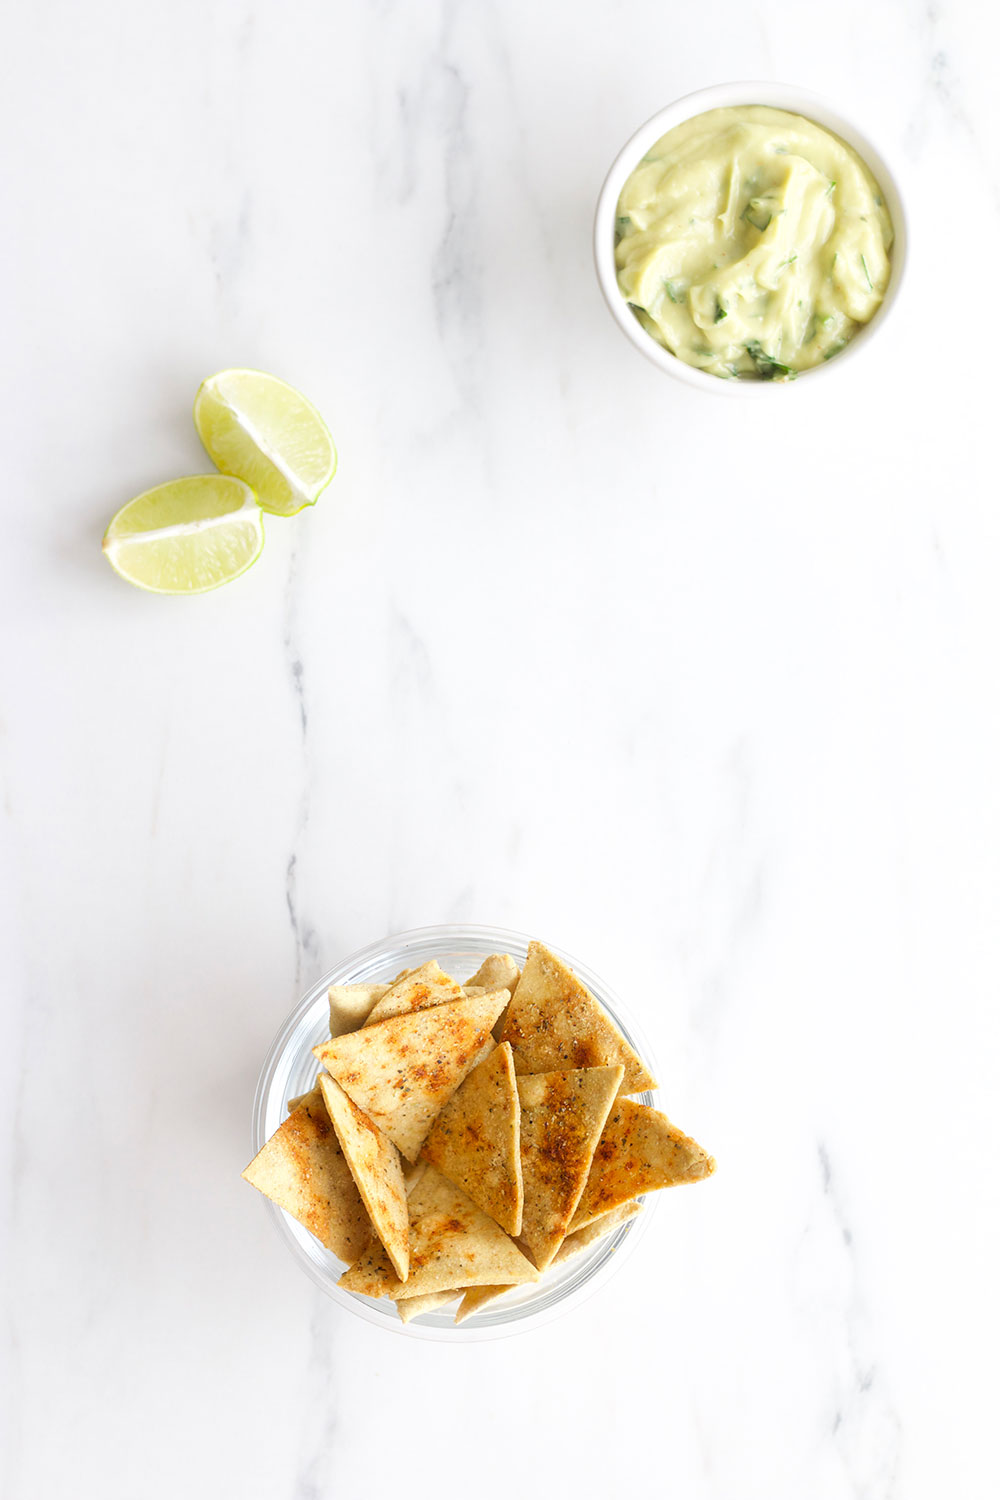 Avocado Dip Recipe: A healthy, low-calorie dip you can have with tortilla chips, nachos and even as a salad dressing! https://www.spotebi.com/recipes/avocado-dip/